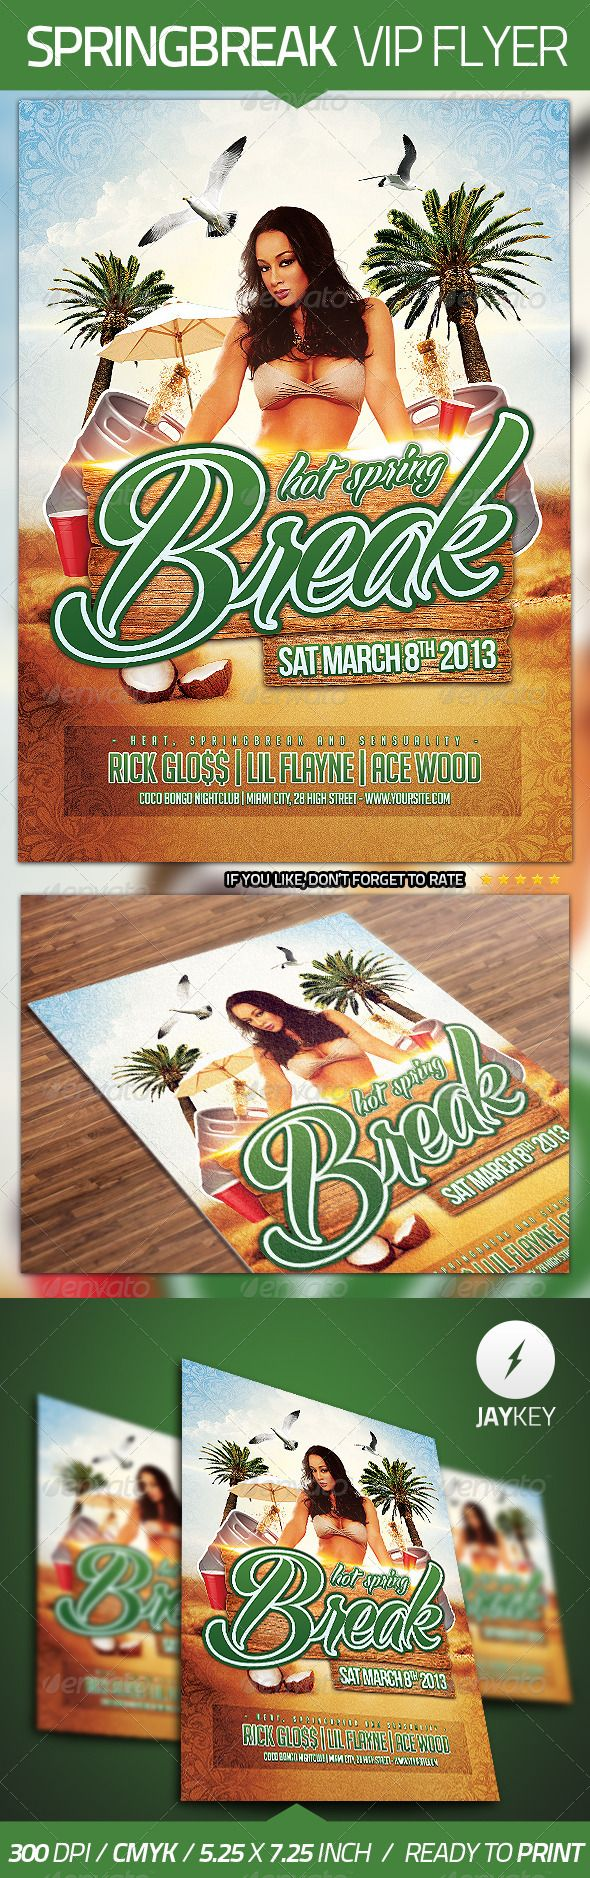 Spring Break Flyer Template  #GraphicRiver            Super easy to edit, all well organized in folders with names, you can easily change Texts, Colors, Add/Remove objects to this layered PSD.   Is very simple add your own image.   All text can be edited.  PURCHASE INCLUDES   Layered PSD File, Print ready / 5.25×7.25 INCH / CMYK / 300dpi  Help File   In the help file you will find links to the font used in the flyer.  —– –—- ——ALL FONTS ARE FREE —-—–—- ——-   If you like, Don't forget to rate  .     Created: 12April13 GraphicsFilesIncluded: PhotoshopPSD Layered: Yes MinimumAdobeCSVersion: CS3 PrintDimensions: 5.5×7.5 Tags: beach #break #club #disco #event #exotic #fruit #girl #holiday #house #jungle #music #night #nightclub #palm #paradise #partyflyer #poster #sexy #spring #summer #tropical #water #wild #wood